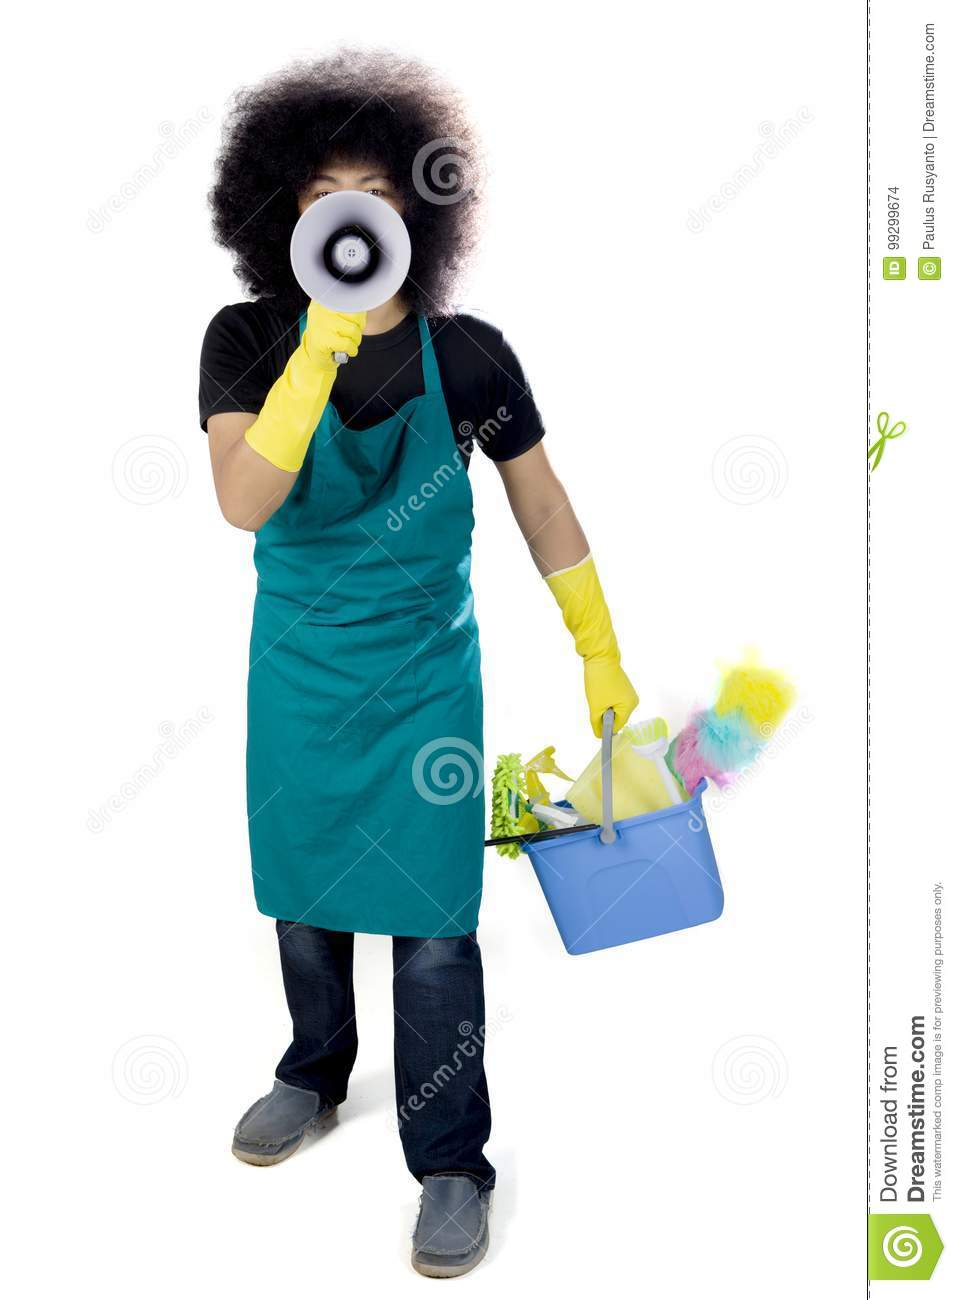 Download Afro Maid With Loudspeaker On Studio Stock Photo - Image of megaphone, adult: 99299674